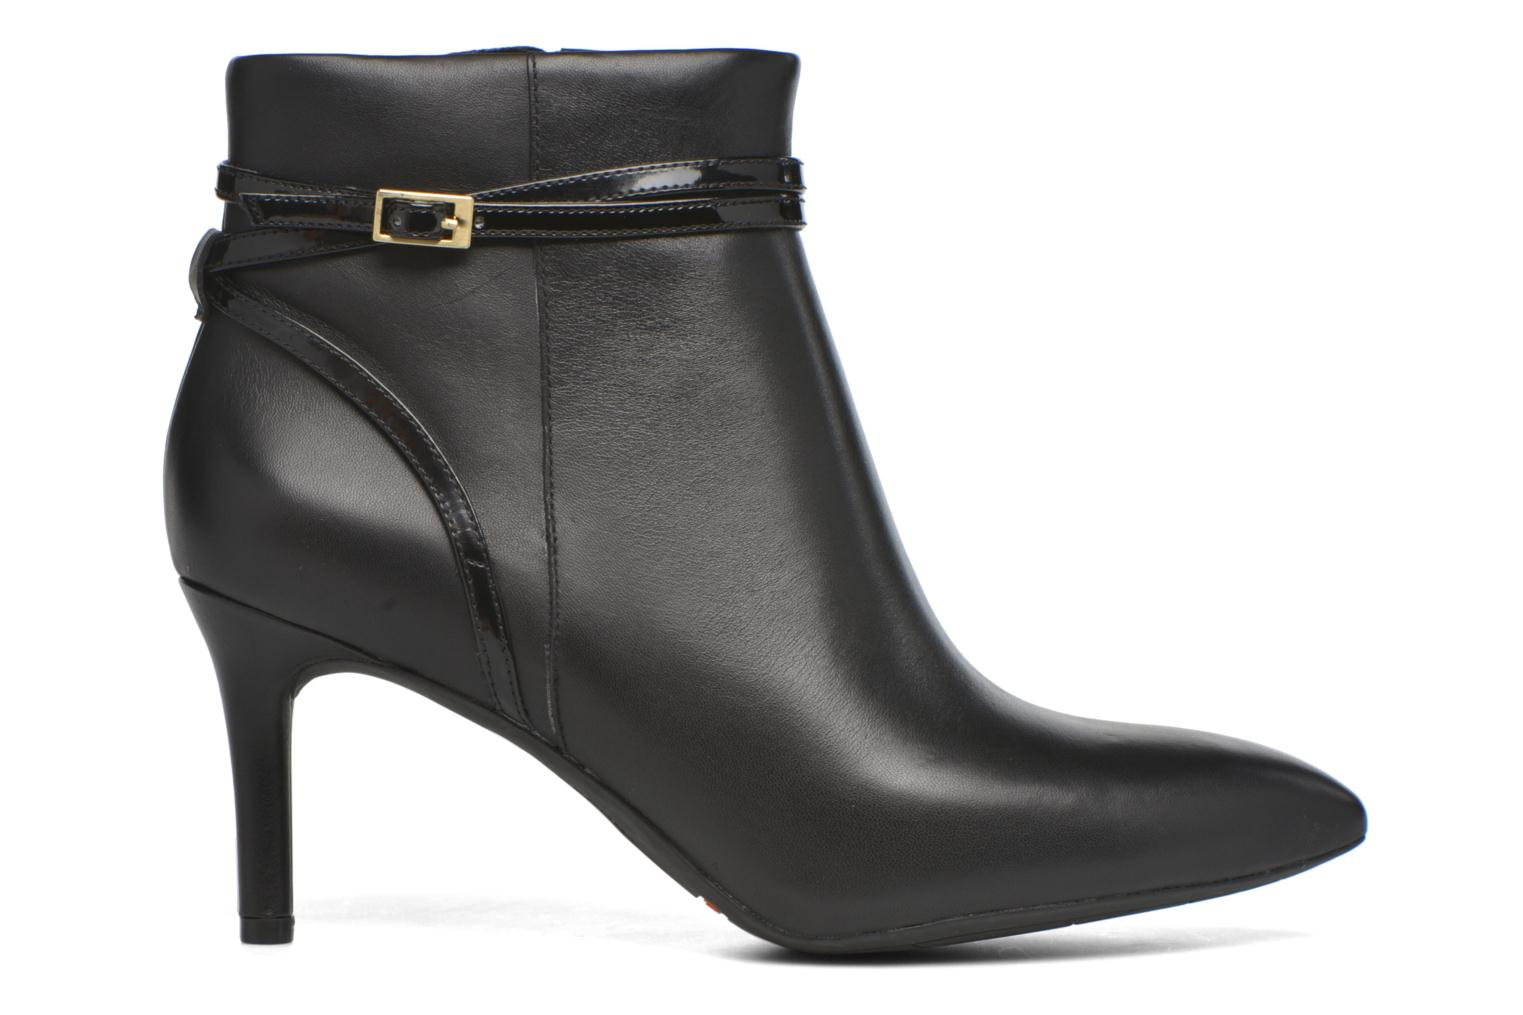 TM75MMPTH Strap Bootie Black leather